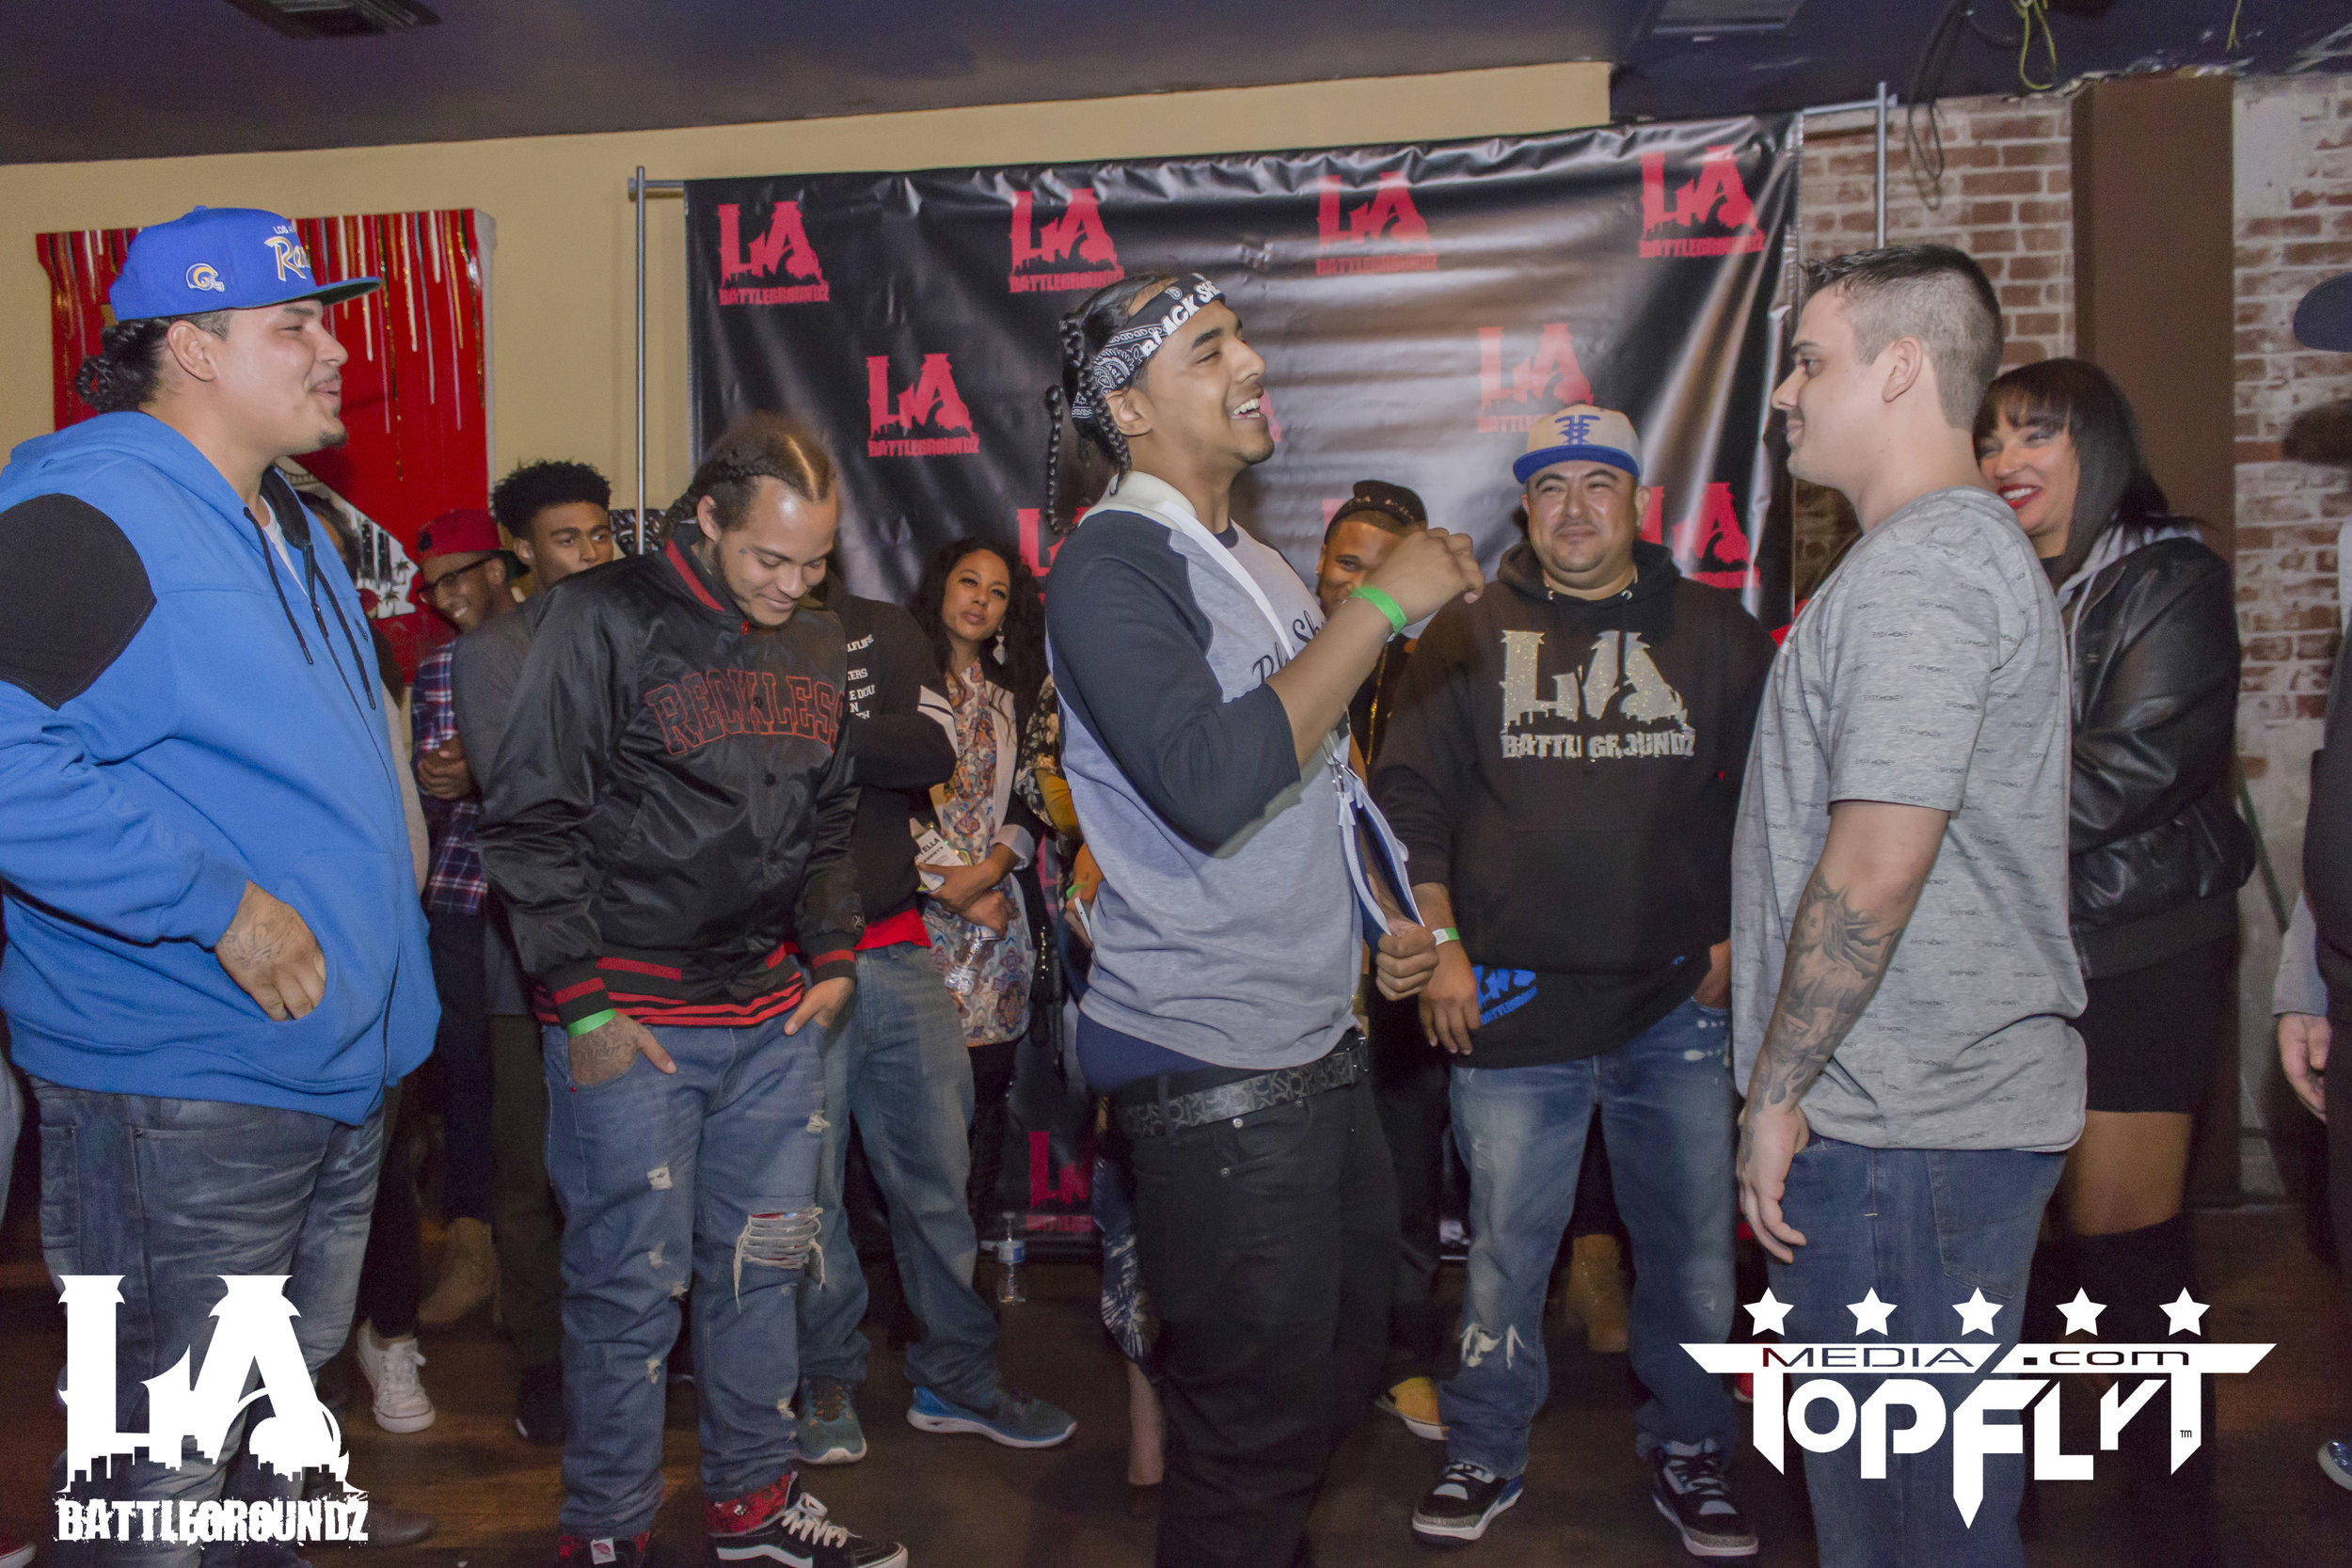 LA Battlegroundz - Decembarfest - The Christening_81.jpg